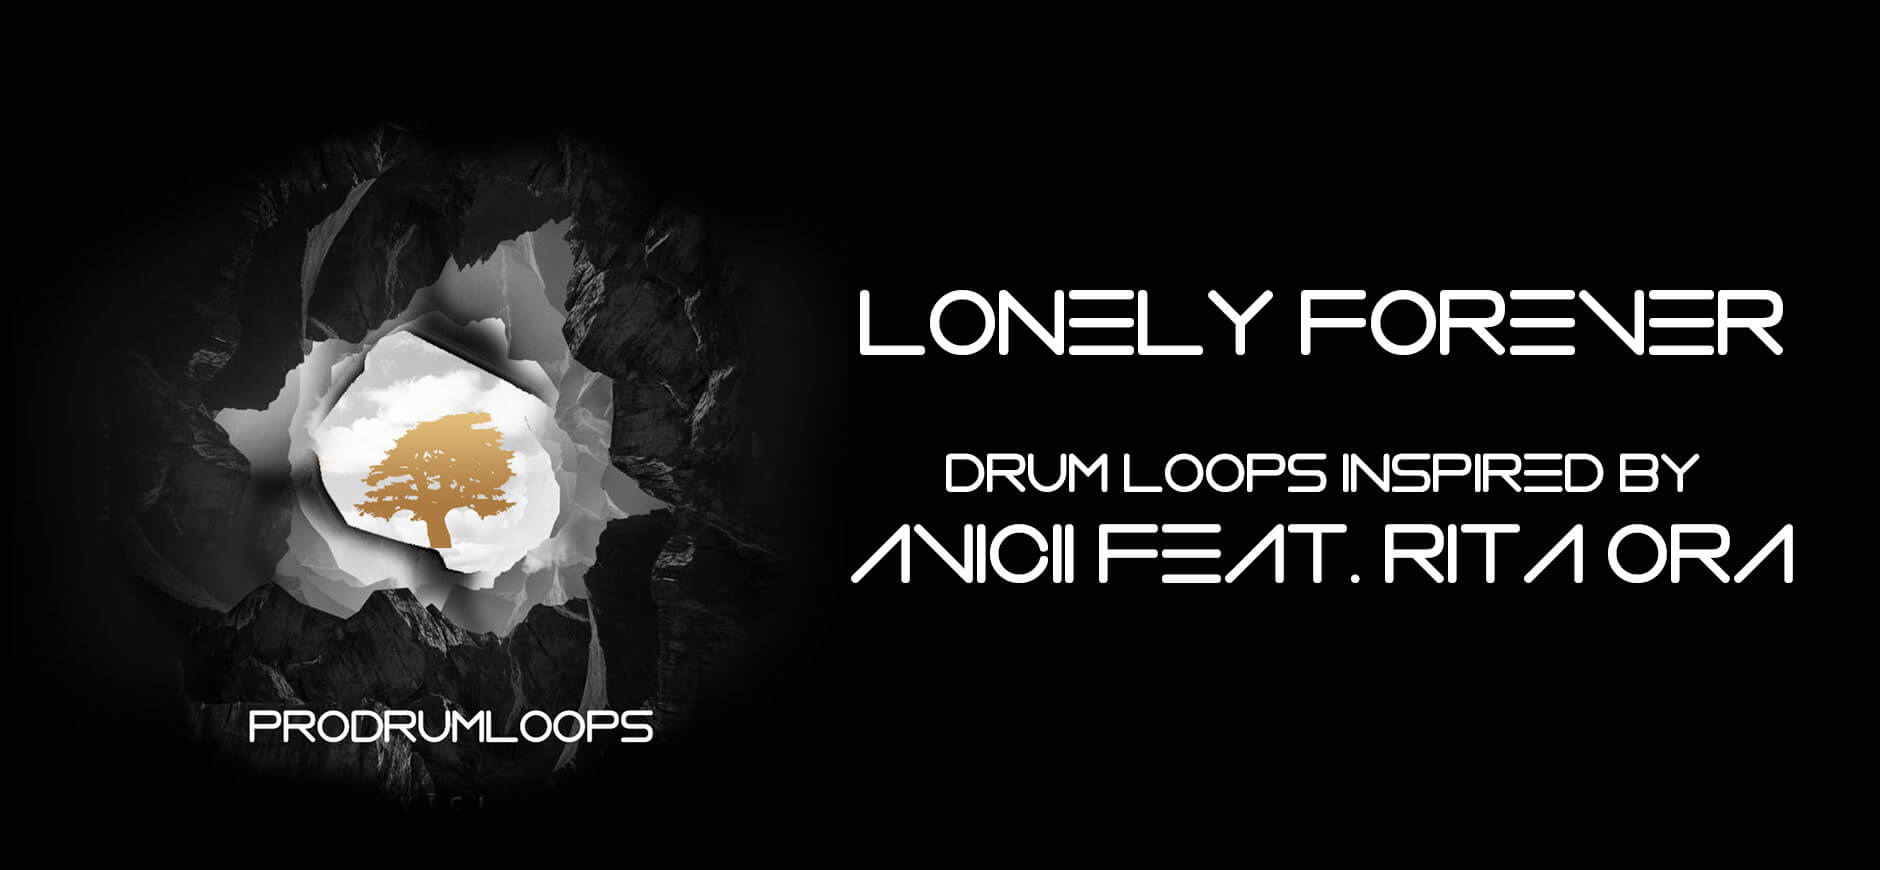 Lonely Together Drum Loops Inspired by Avicii ft. Rita Ora